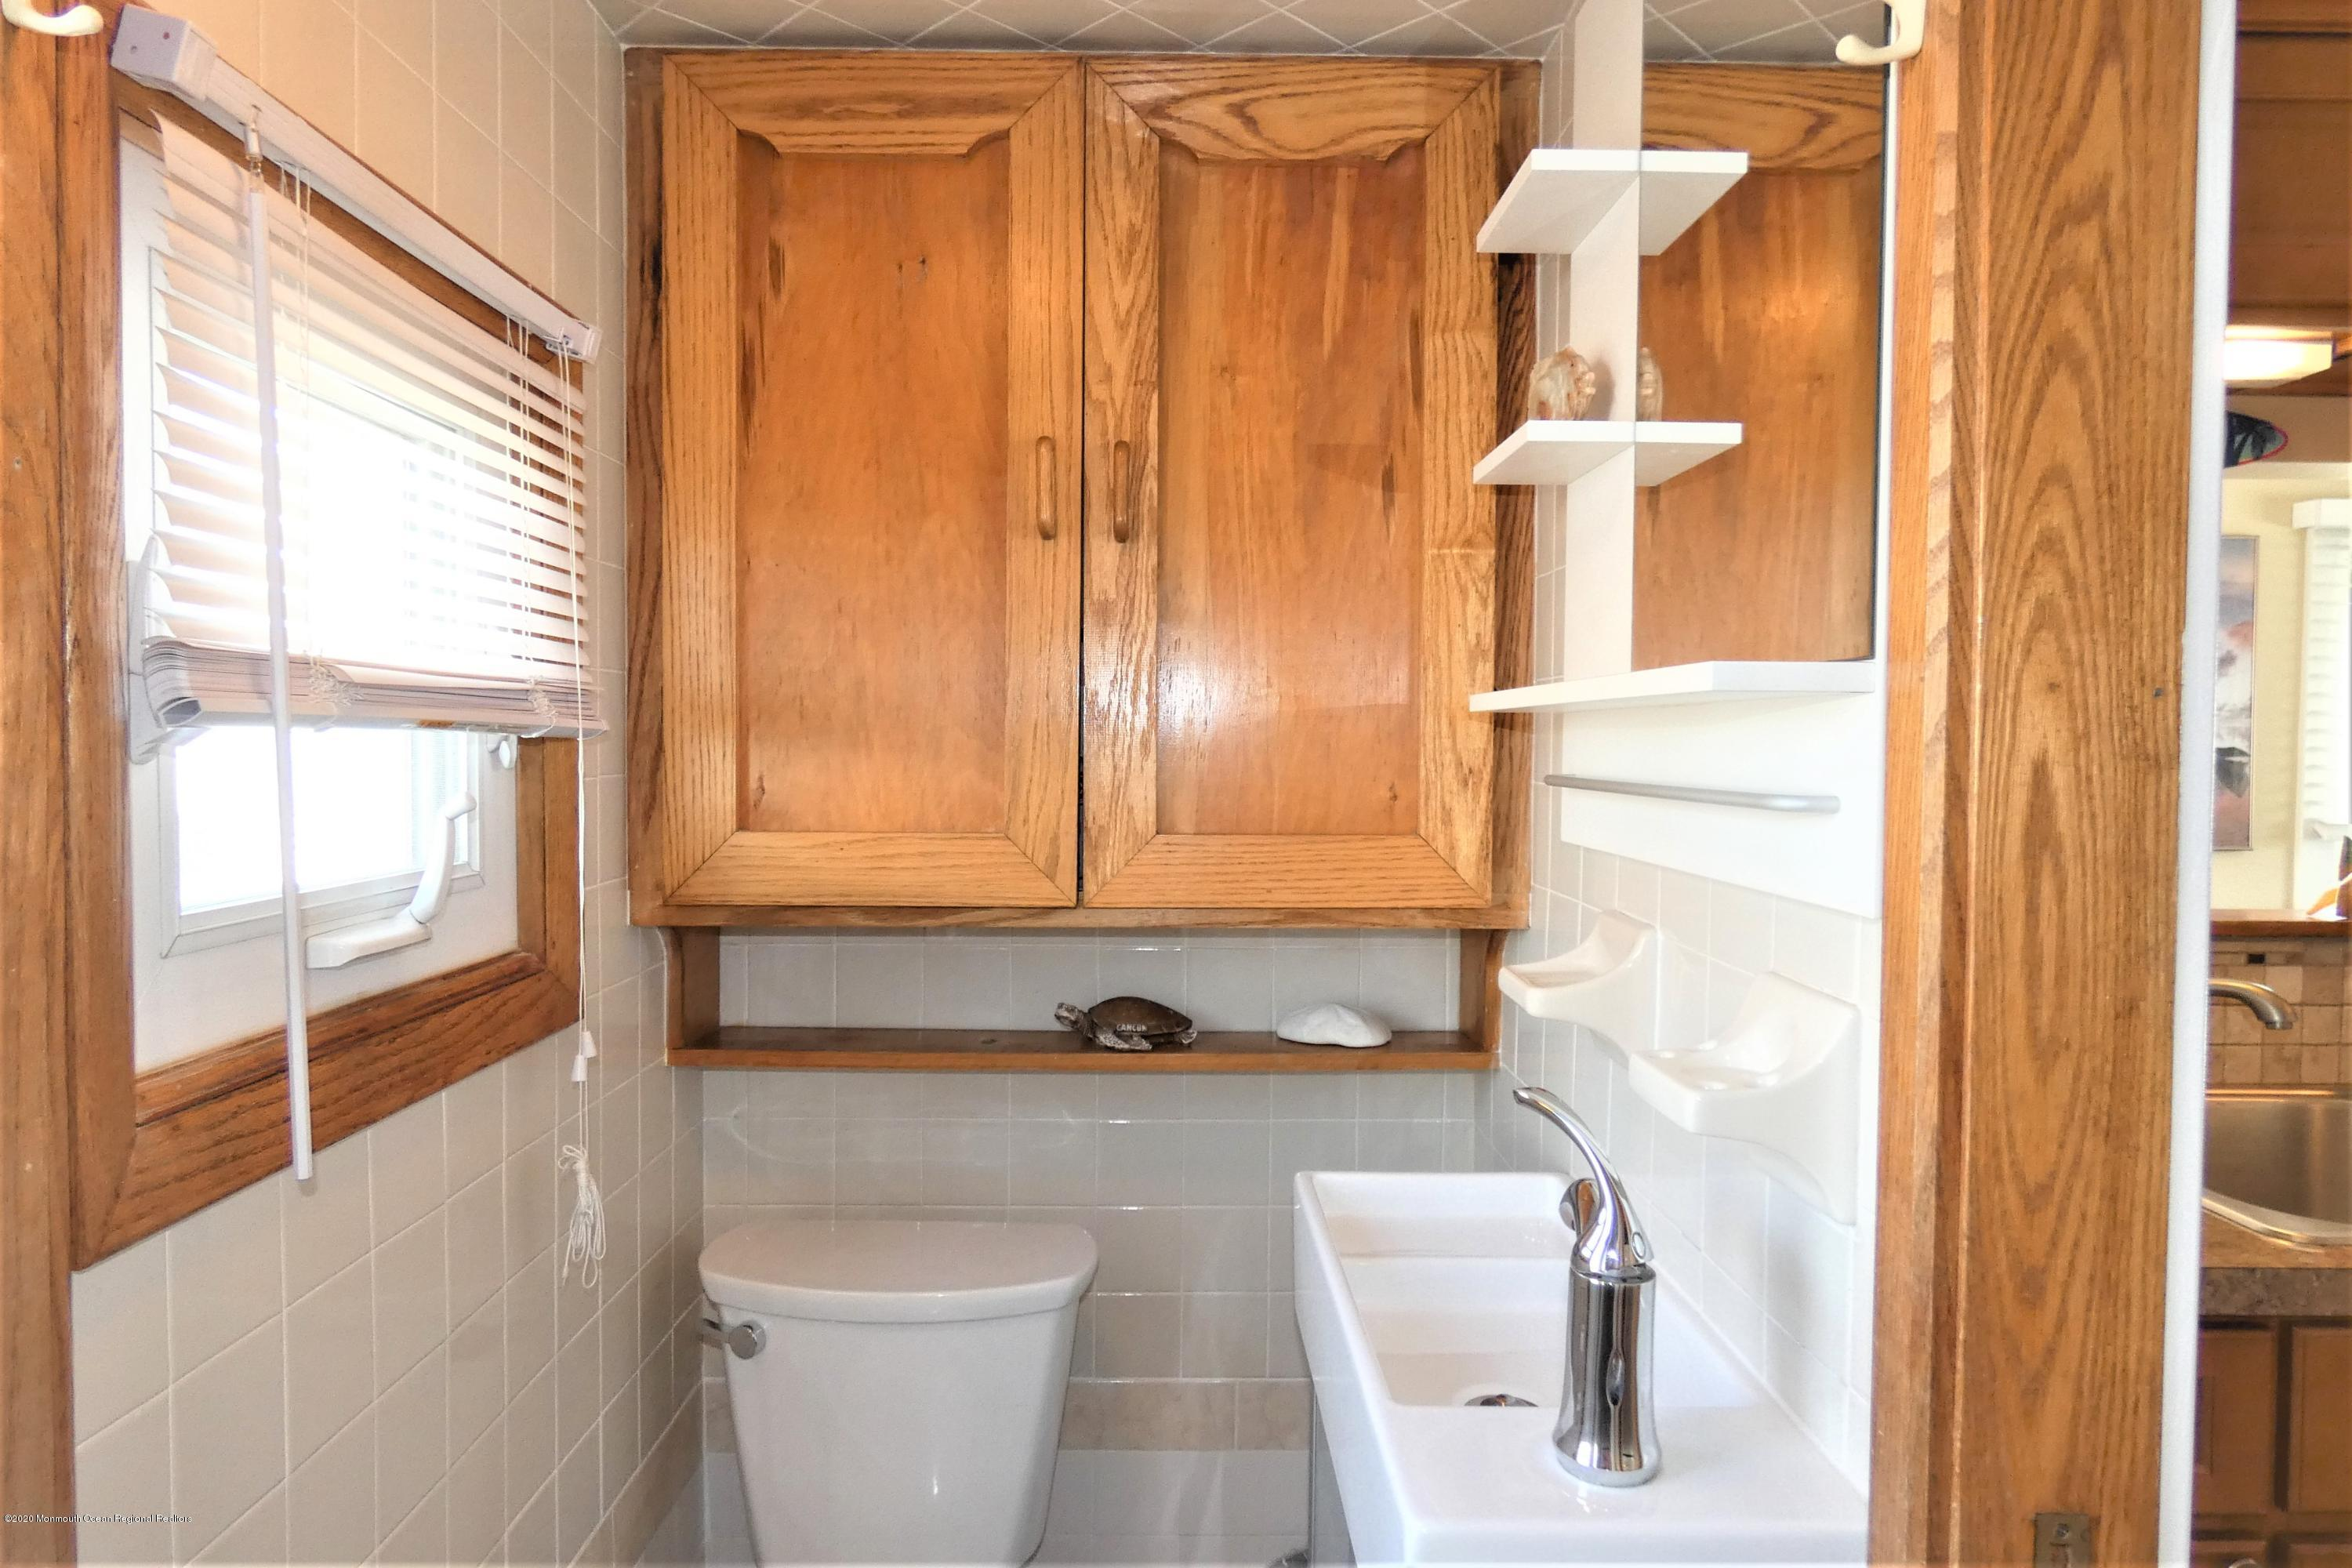 26 E Dolphin Way - Picture 14